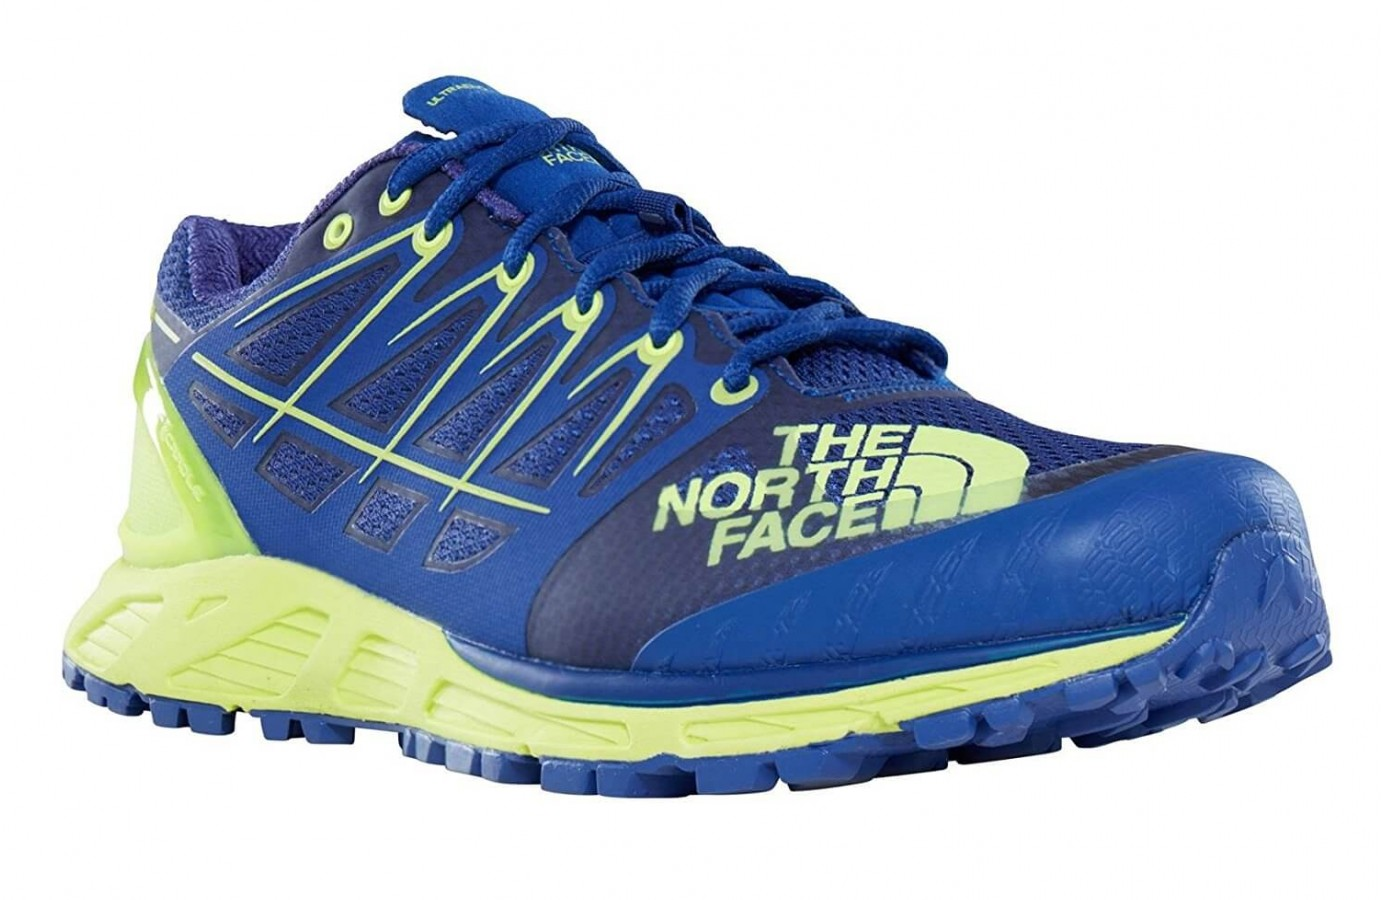 c684eecc3 The North Face Ultra Endurance II